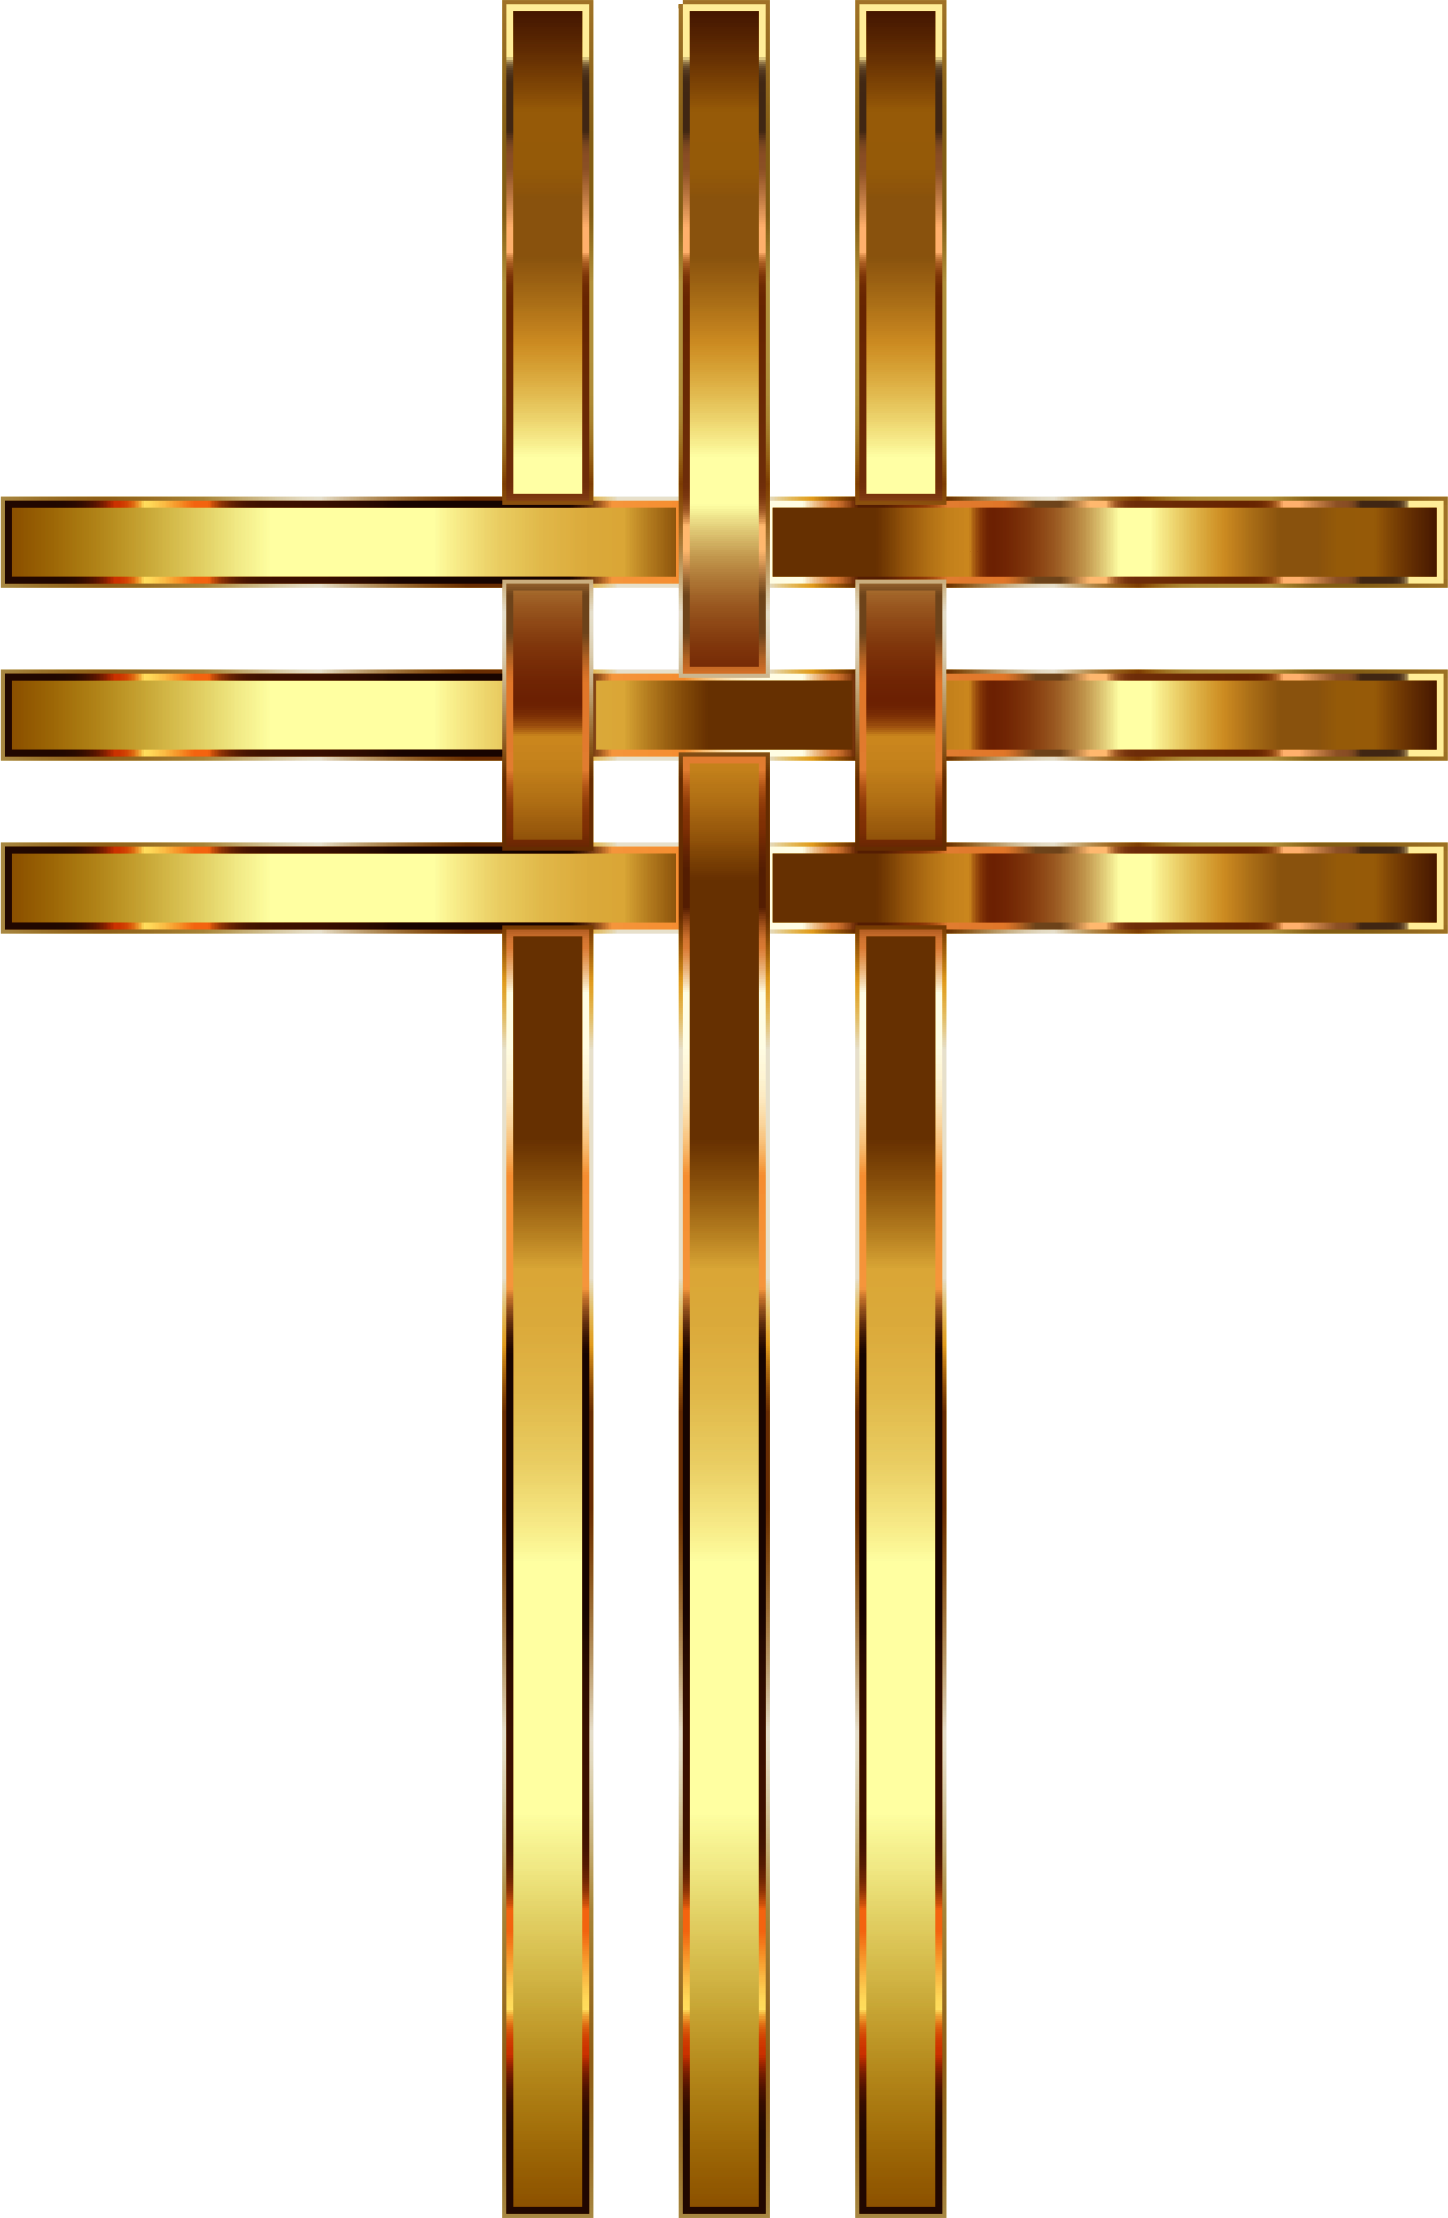 Interlocked Stylized Golden Cross Enhanced Contrast No Background by GDJ